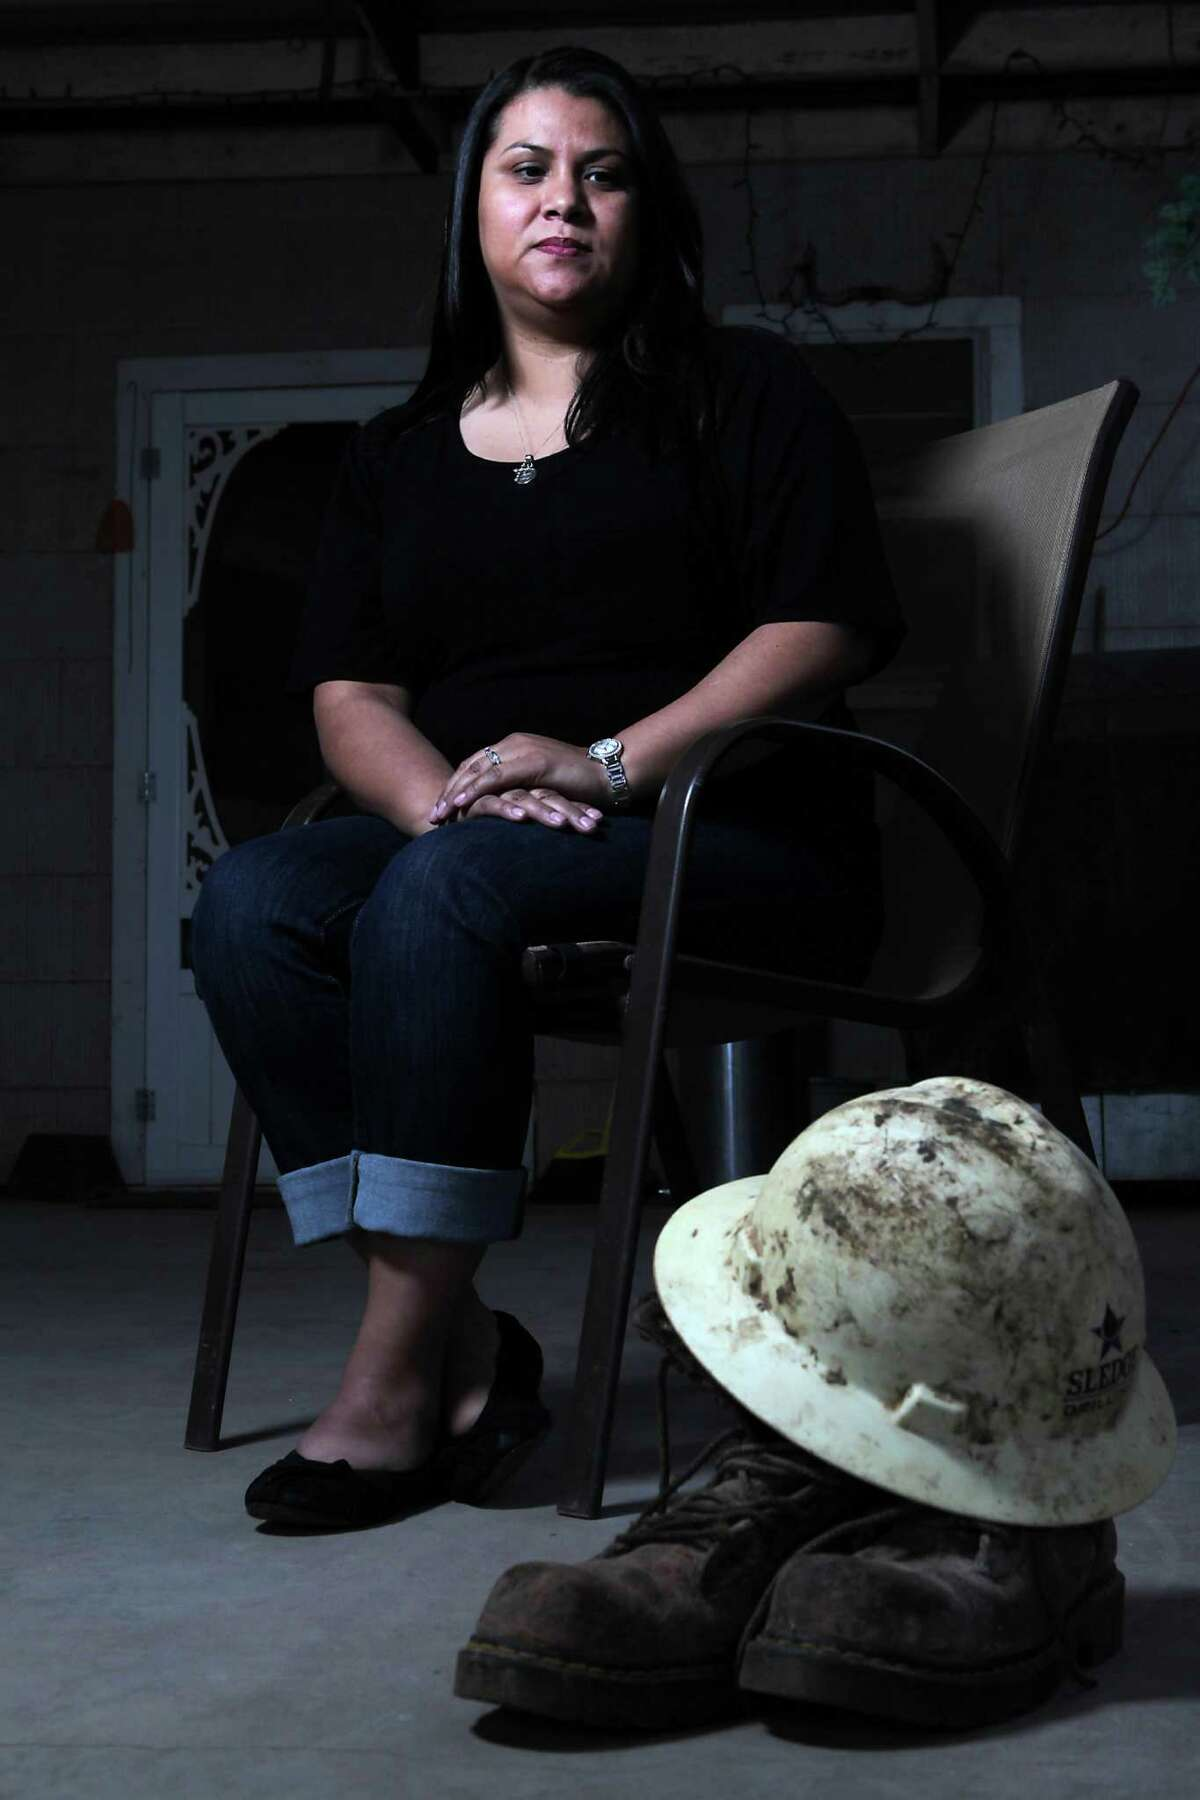 Tina Saiz, the widow of a Felipe Saiz who was killed in a drilling rig accident that occurred at Heart Land Drilling Rig 11 in June 2013, is shown with her late husband's hard hat and the boots he was wearing on the day he was killed.